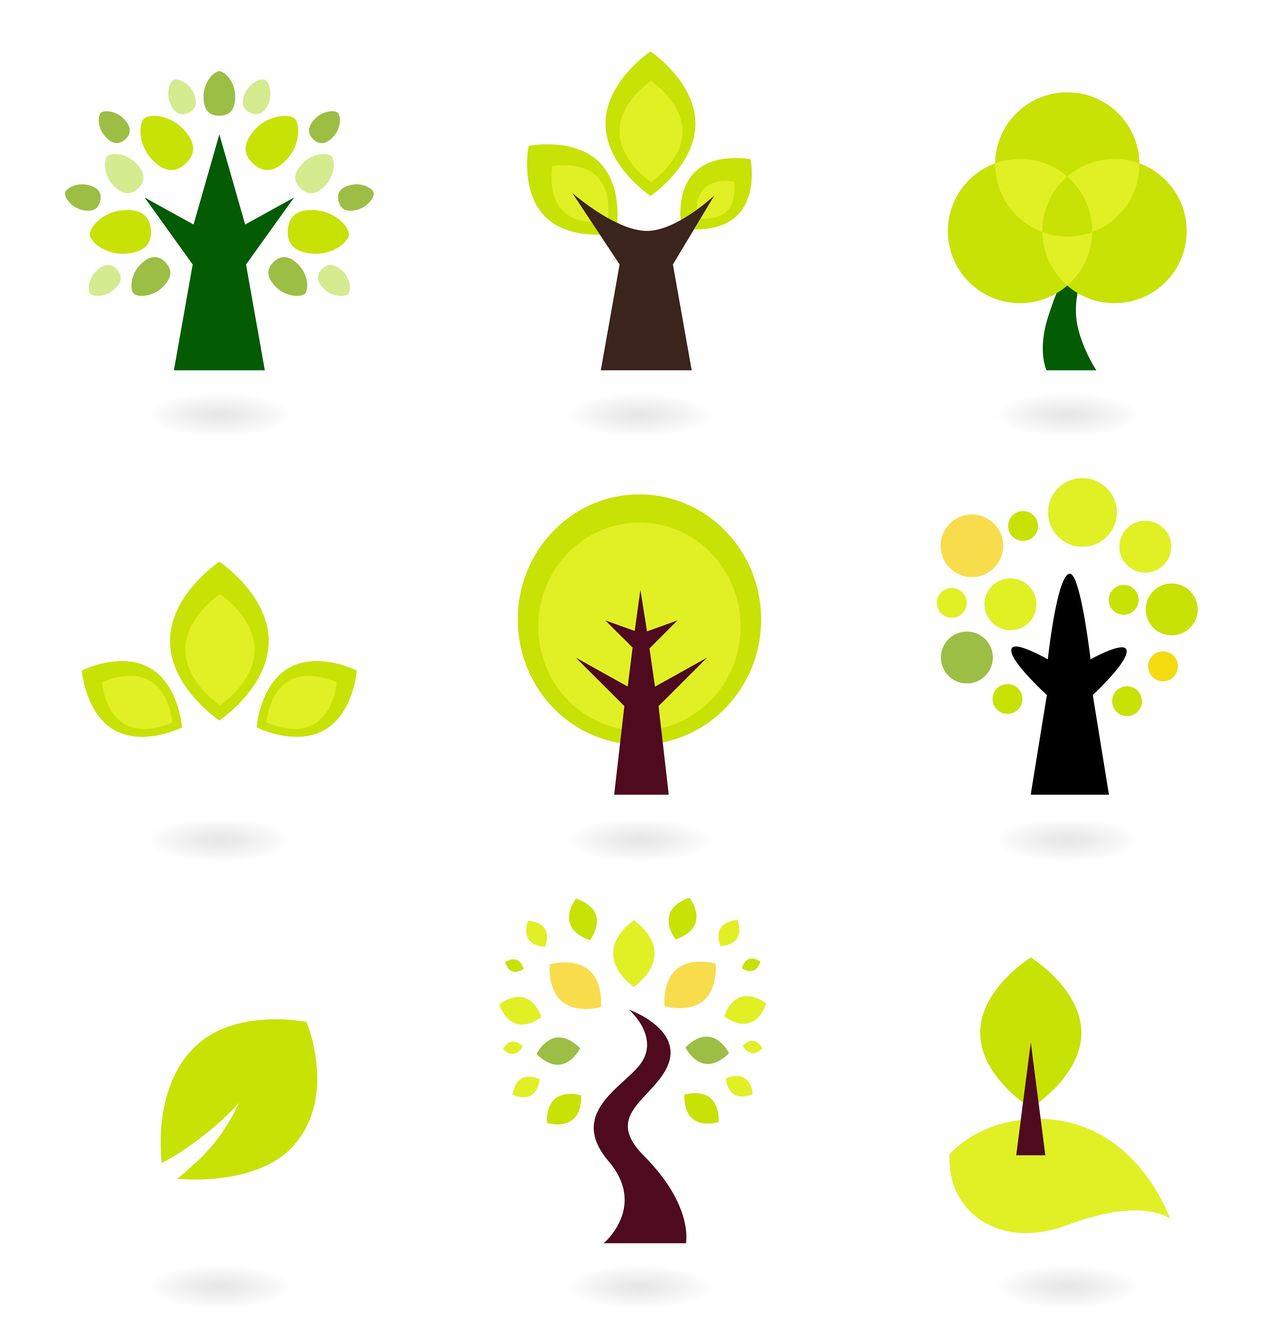 Designers Hand-drawn elegant green Trees / on white Art Business Company Computer Graphic Computer Icon Green Green Color Naturals Collection Symbol Symbolism Tree Trees Icons Trees Icons White Background